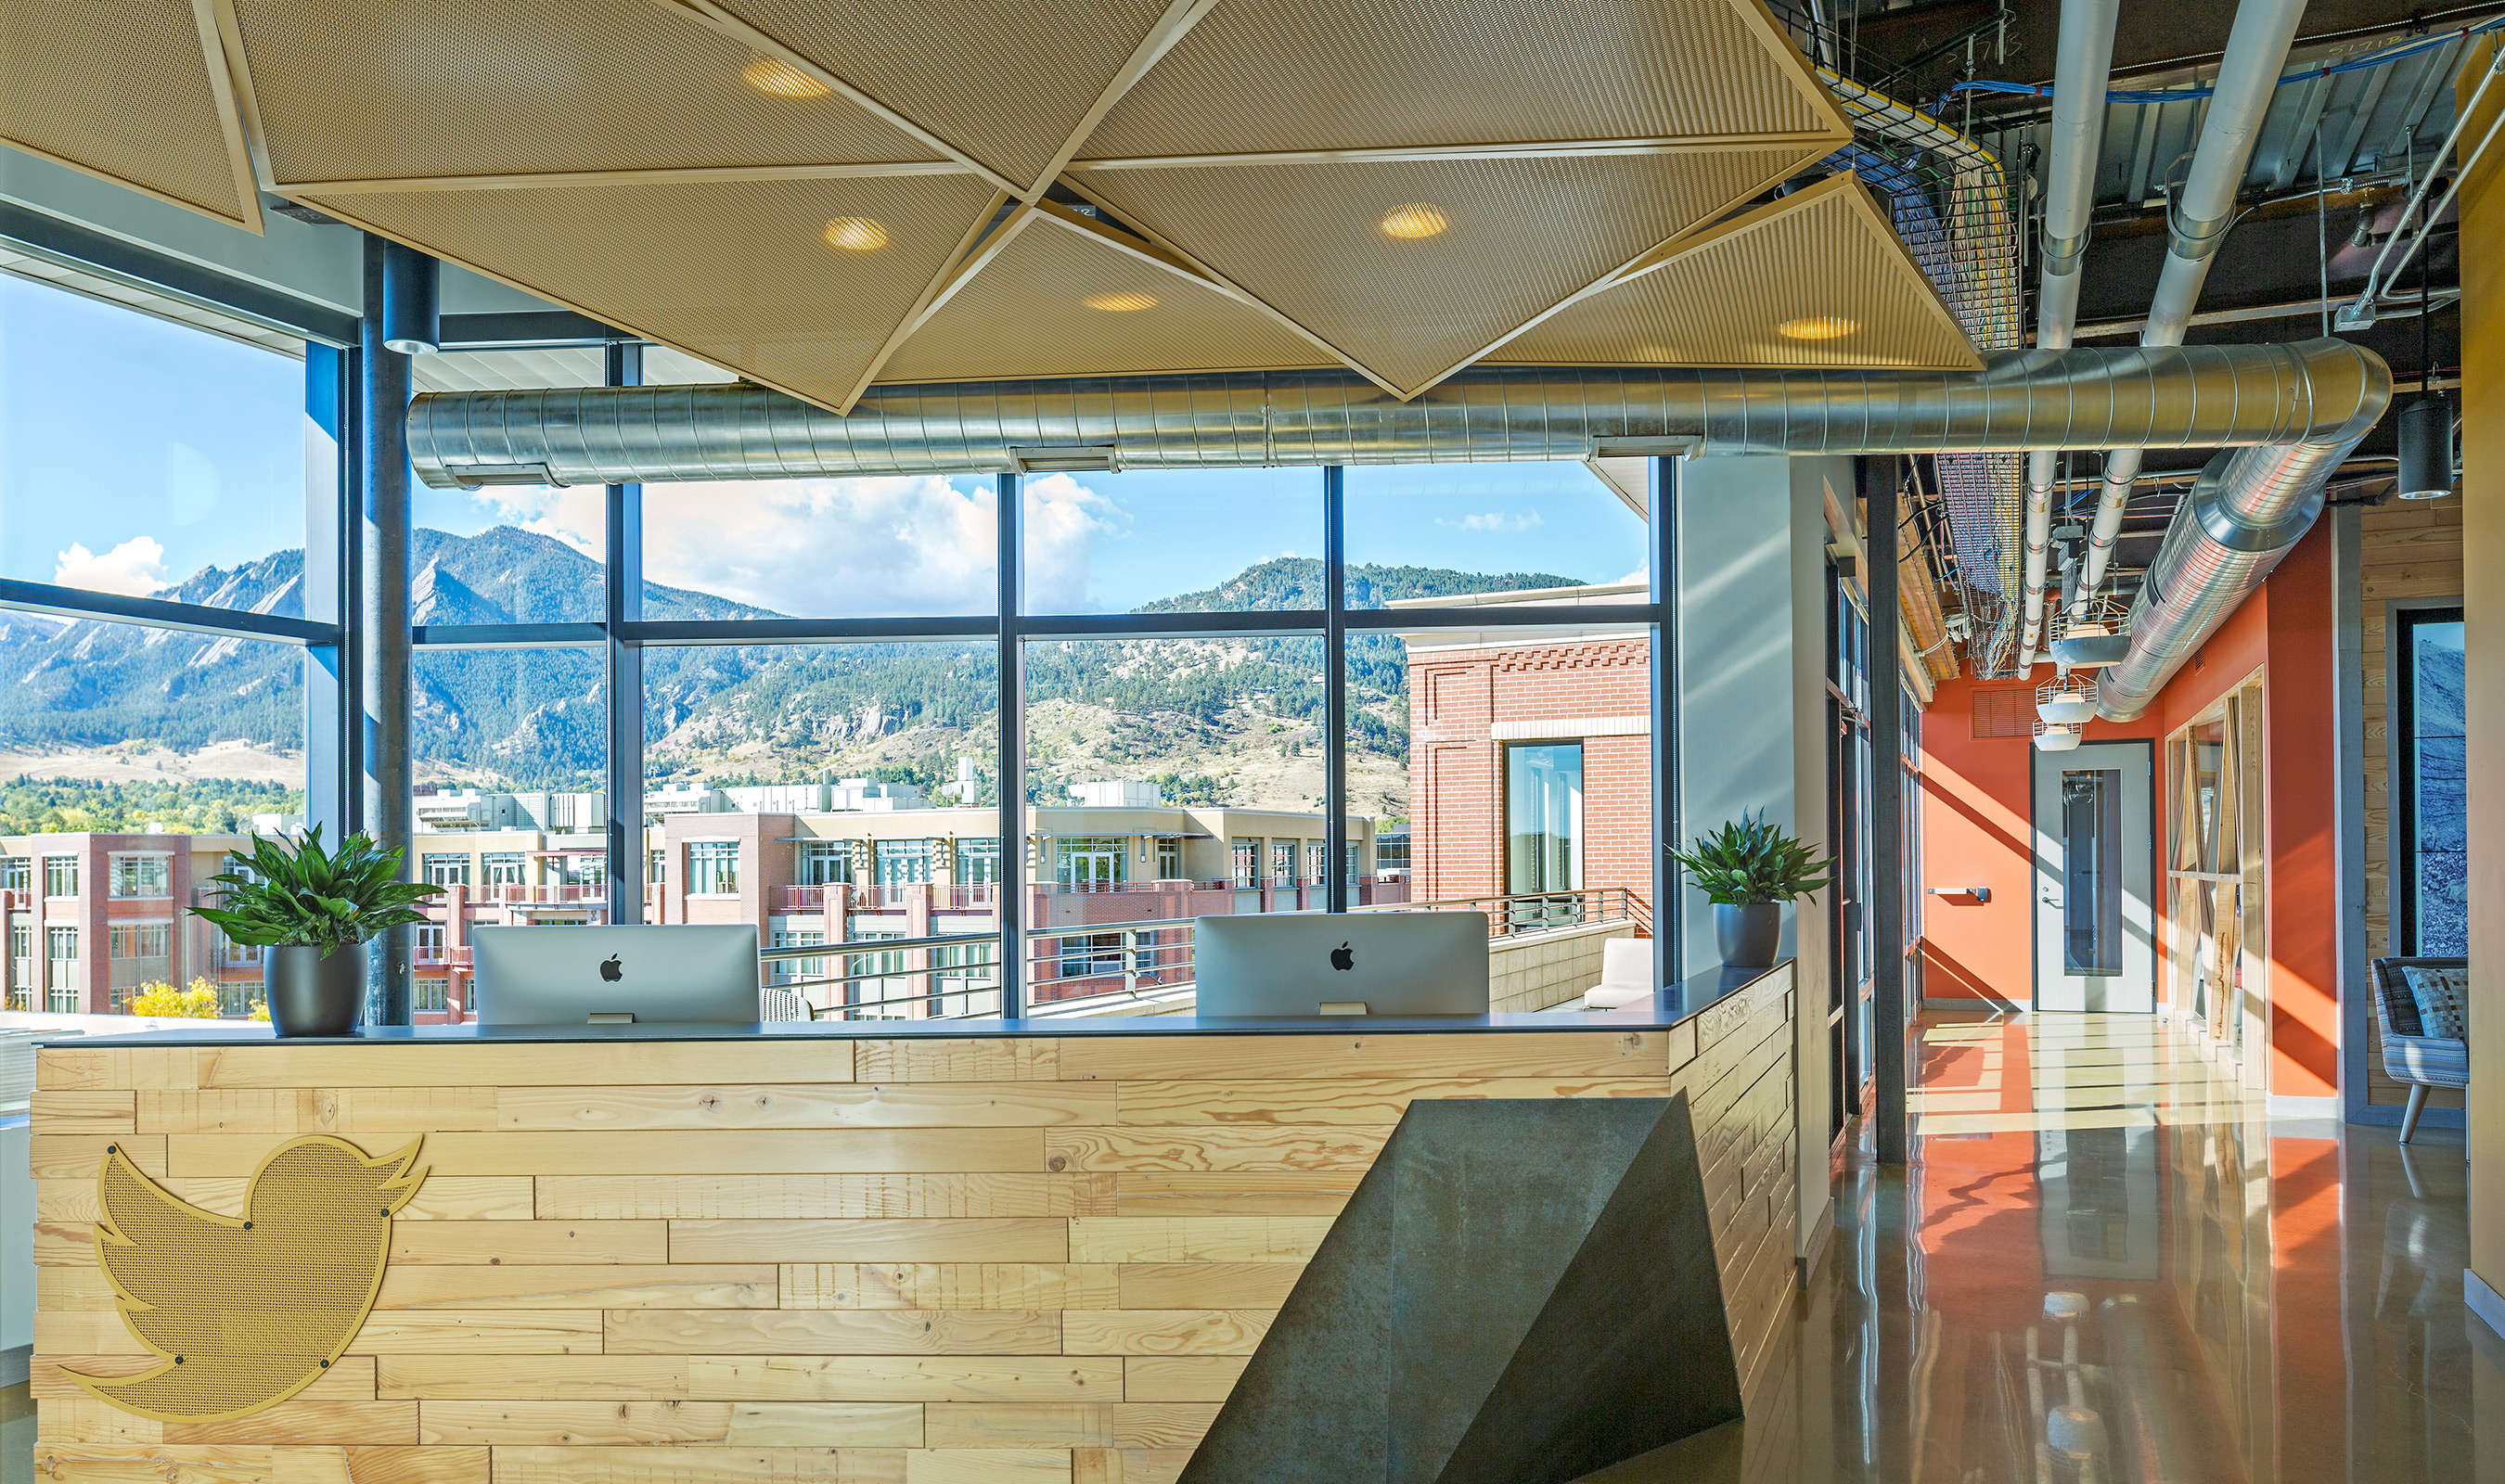 TW-1 woven wire mesh is a stunning addition to the ceilings of Twitter's Boulder office.